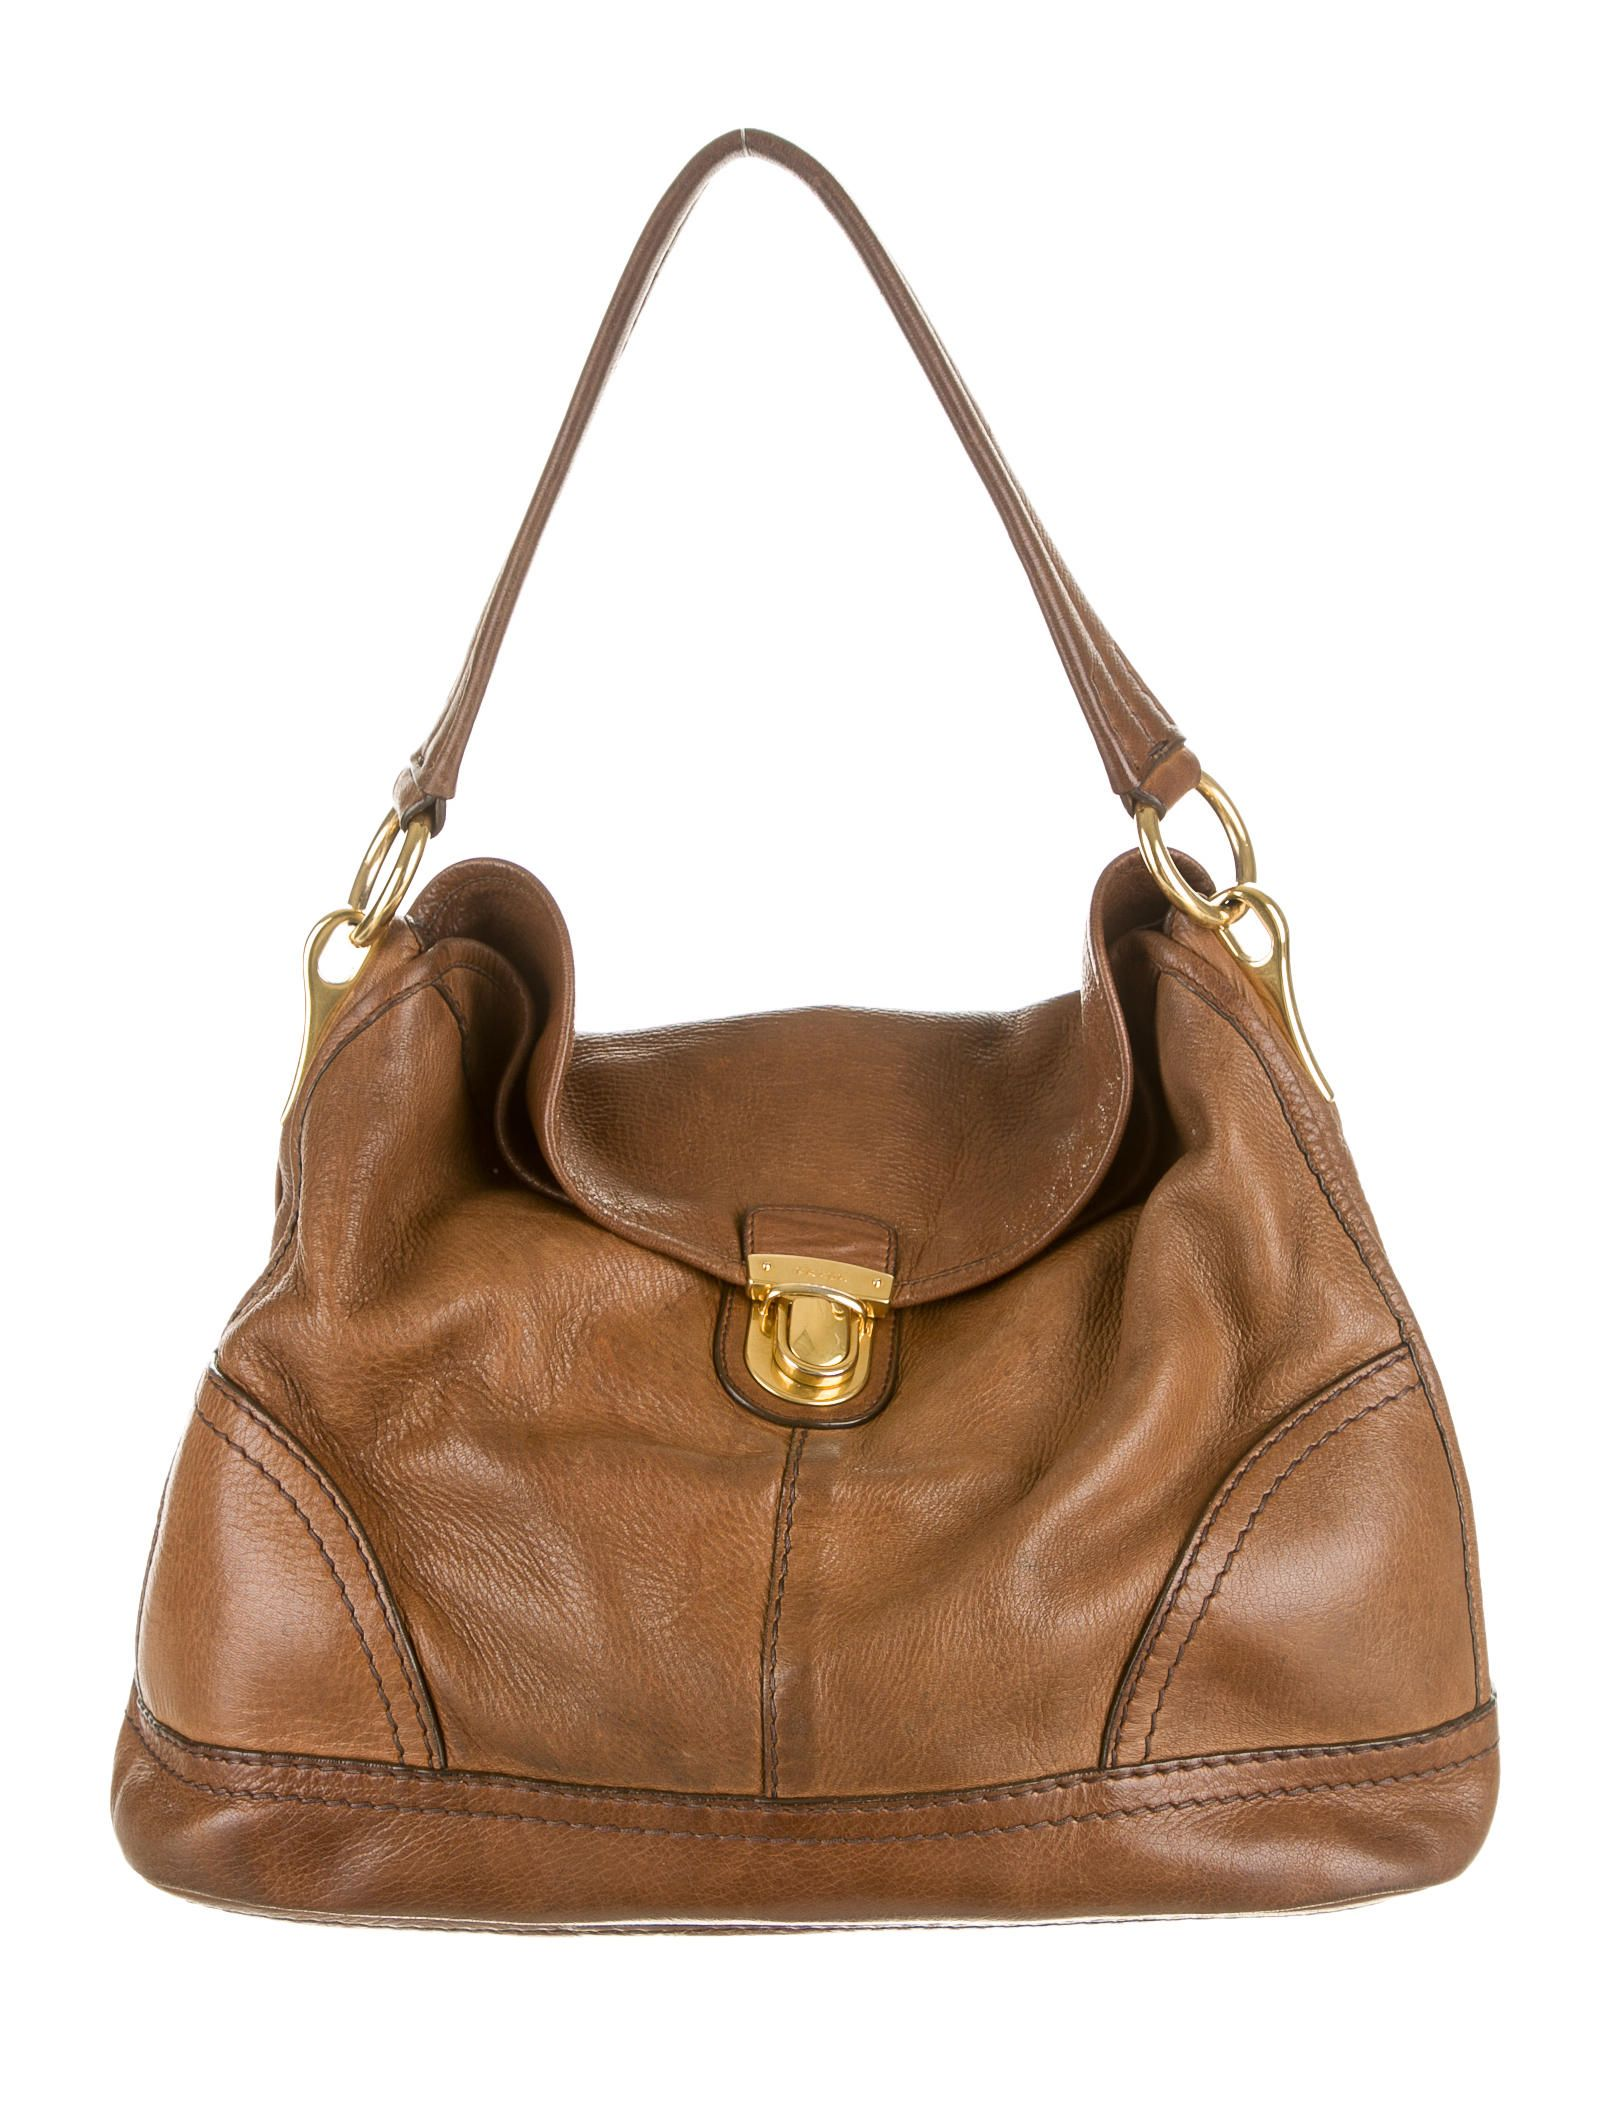 9800fa1998 Brown pebbled leather Prada Chevre Easy satchel with matte gold-tone  hardware